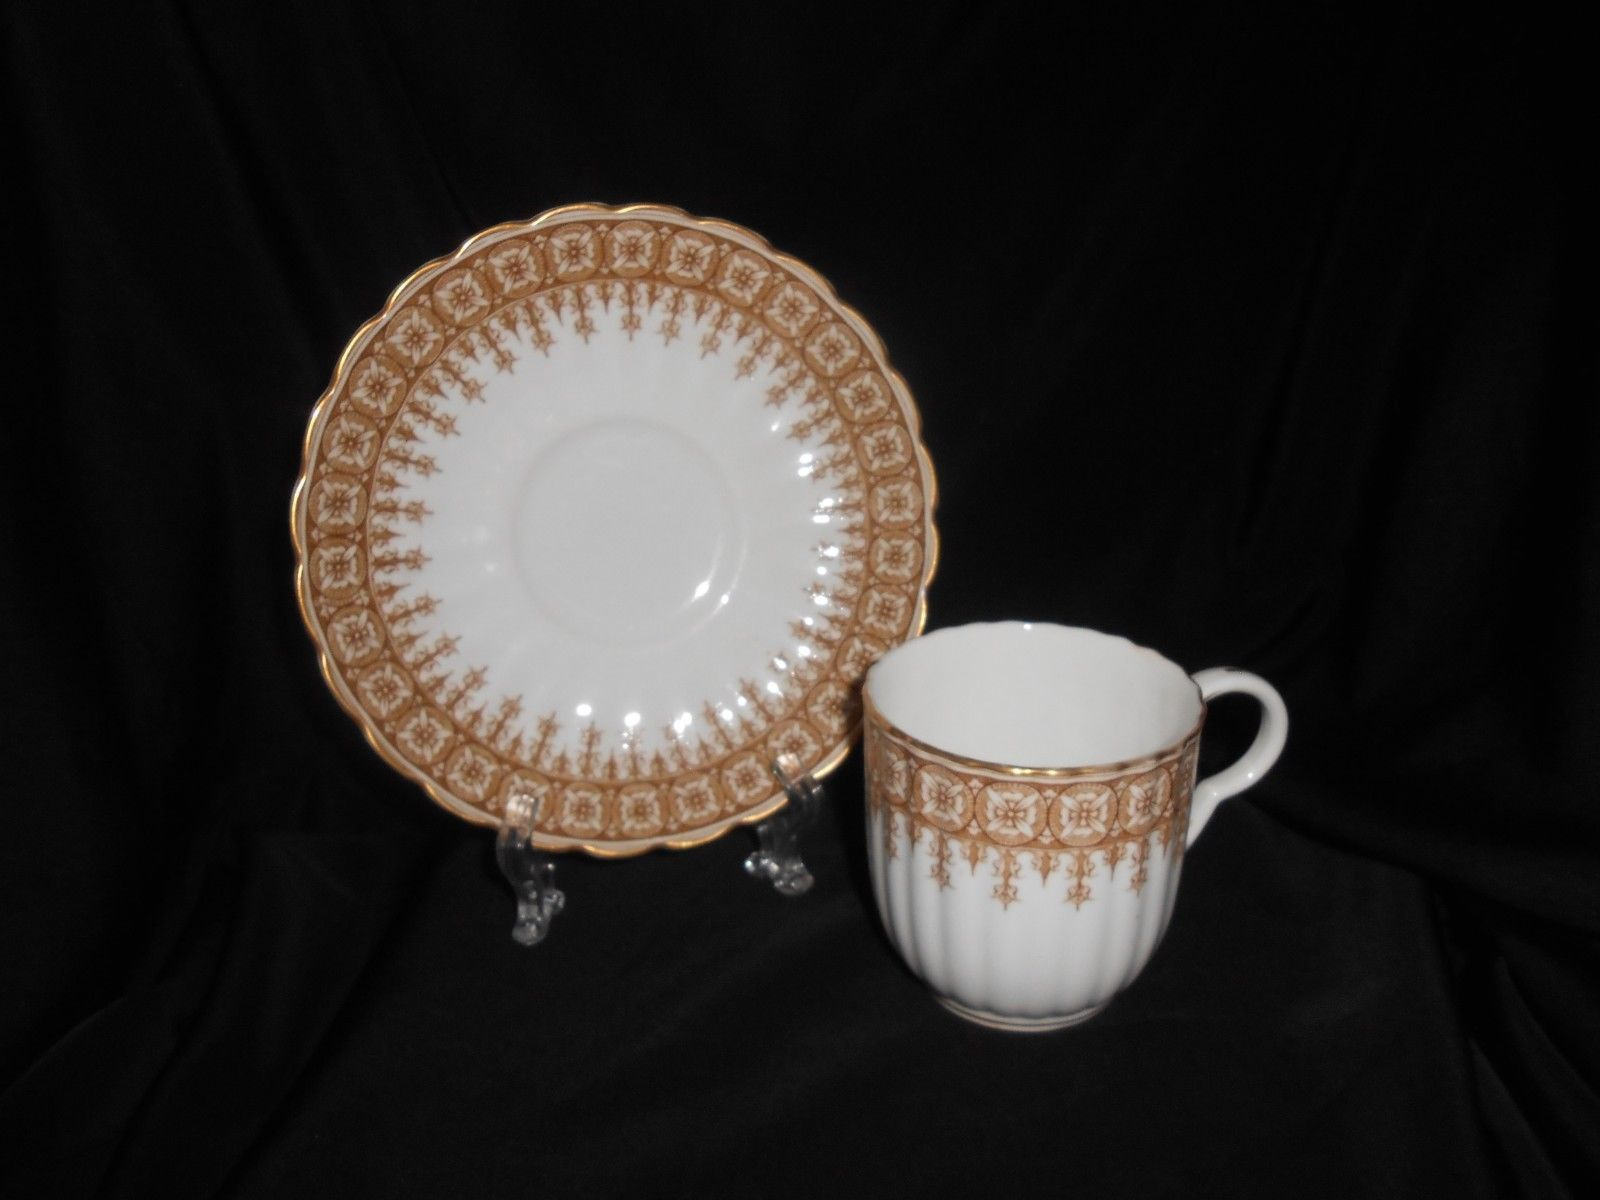 Royal Worcester Cup & Saucer Set Of 6 Gold Lace Antique China Fine Dining